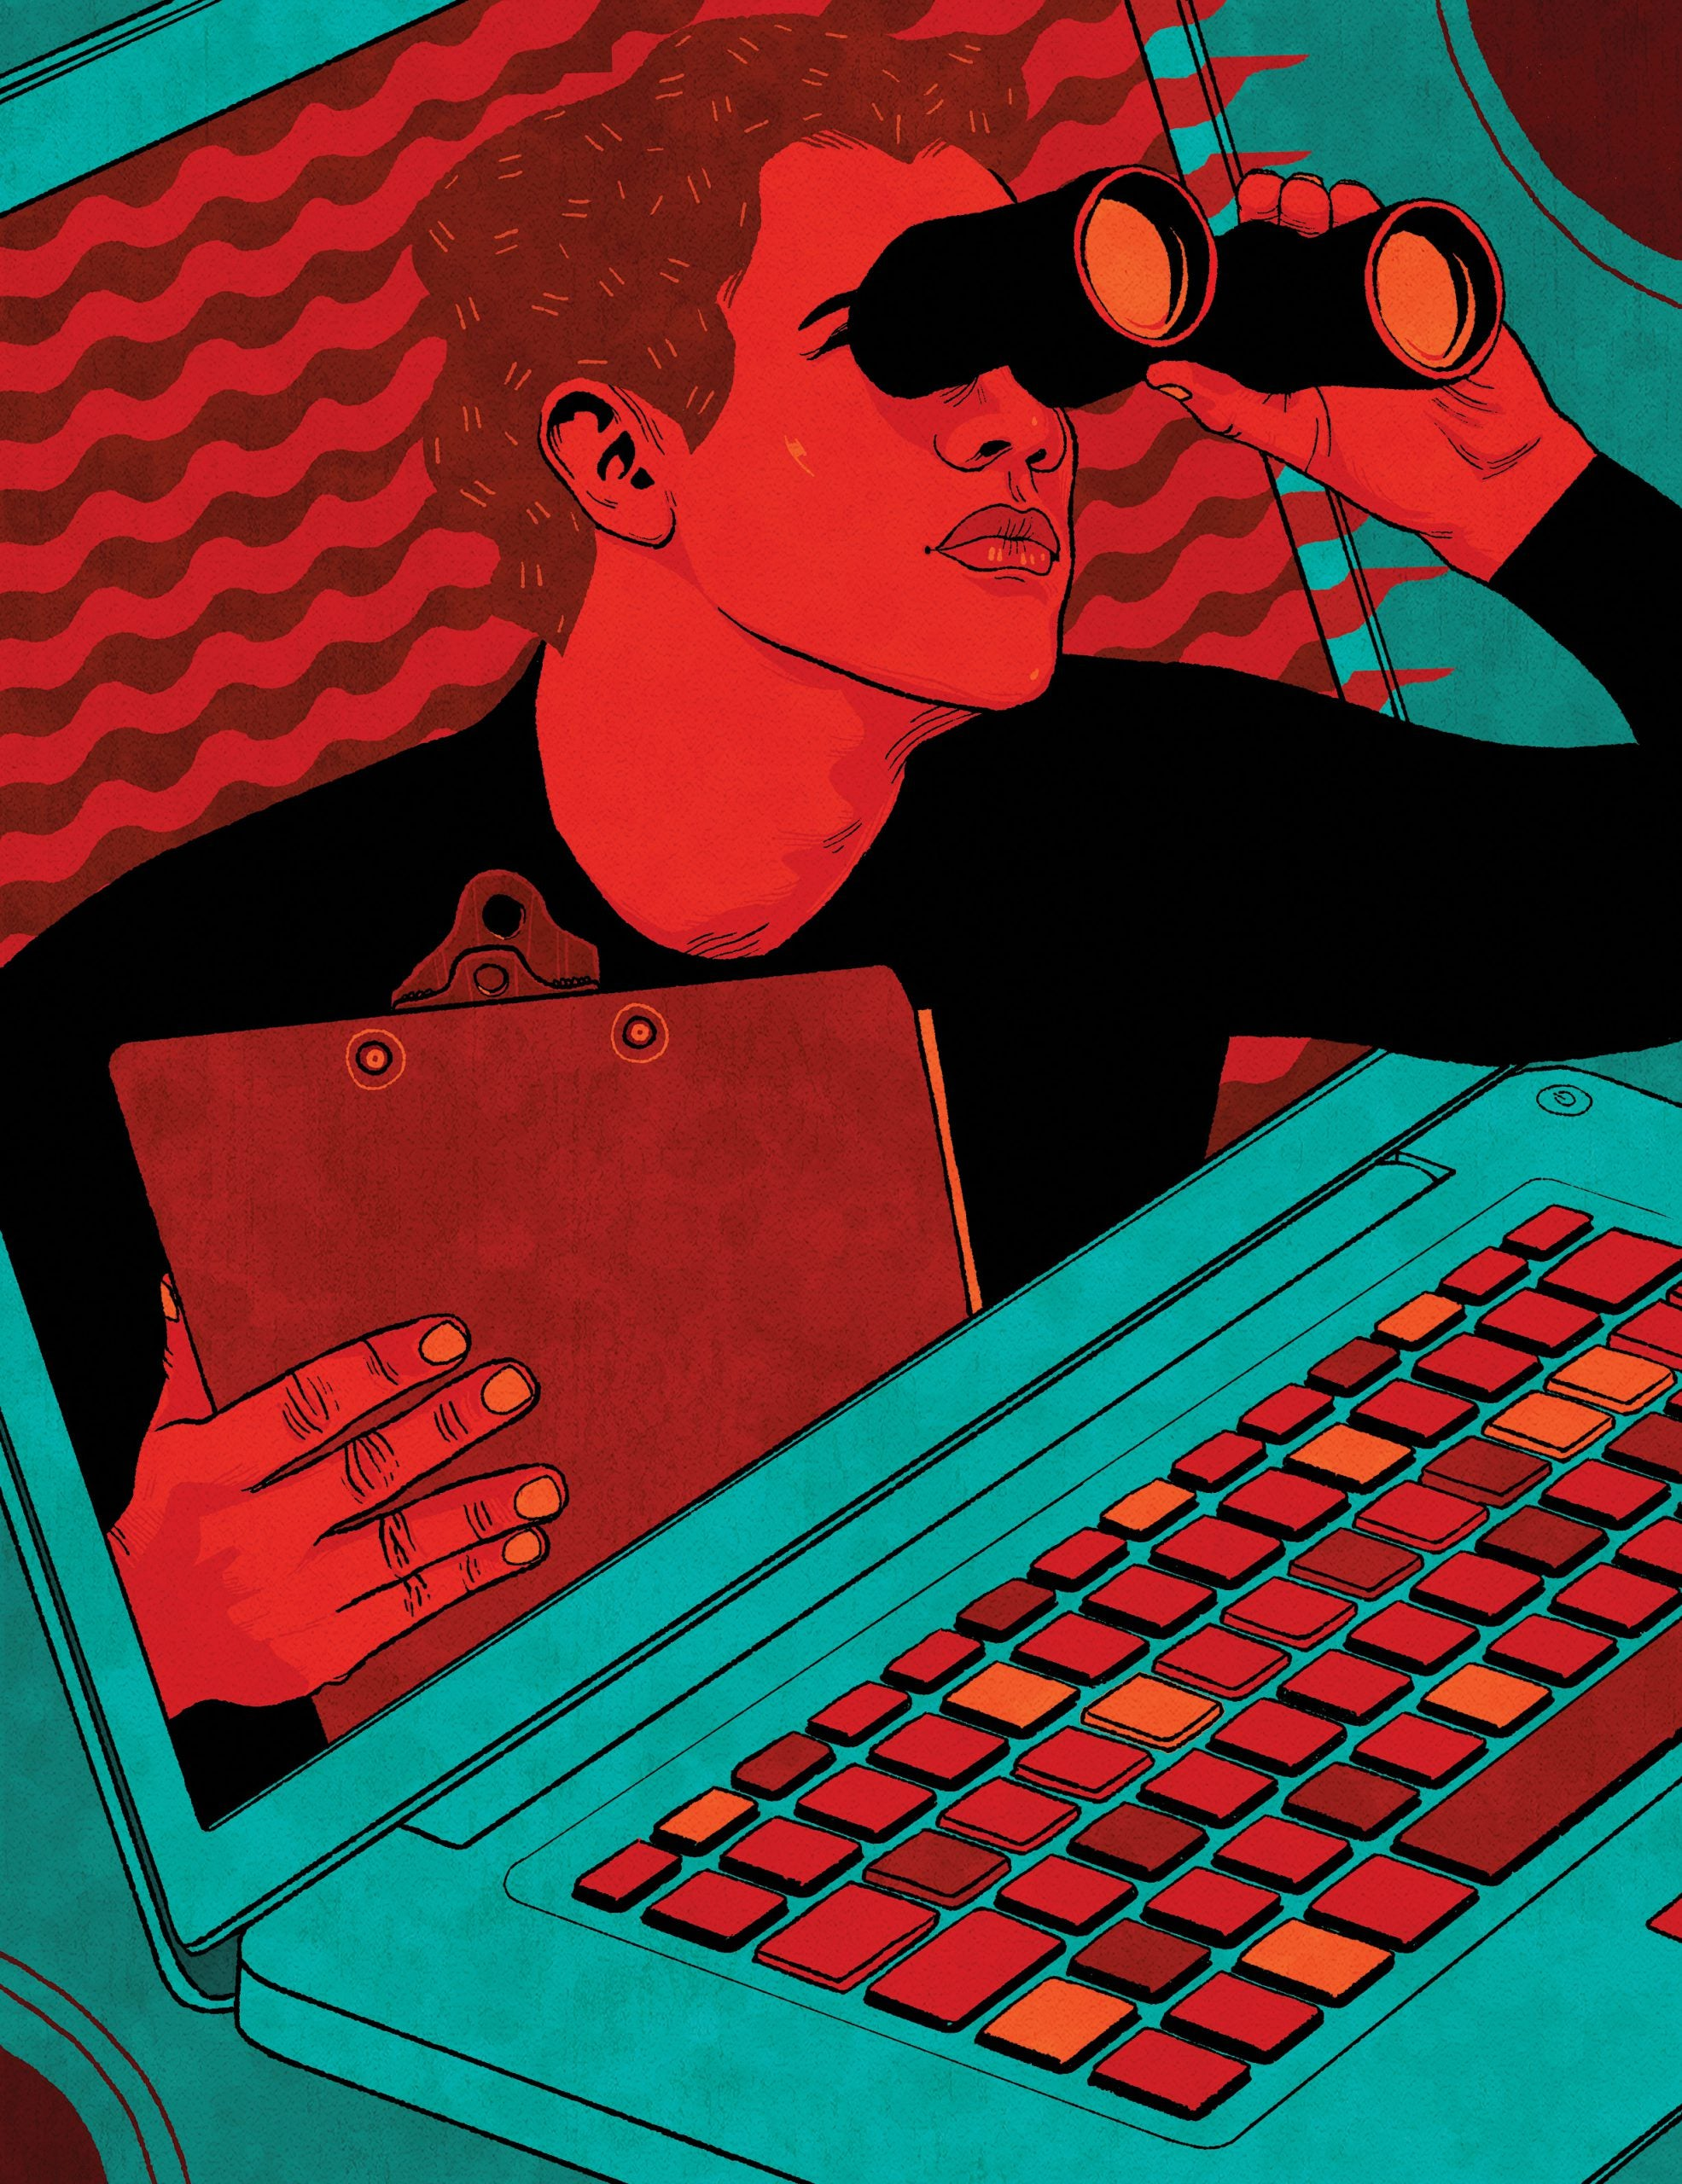 Slouching towards dystopia: the rise of surveillance capitalism and the death of privacy